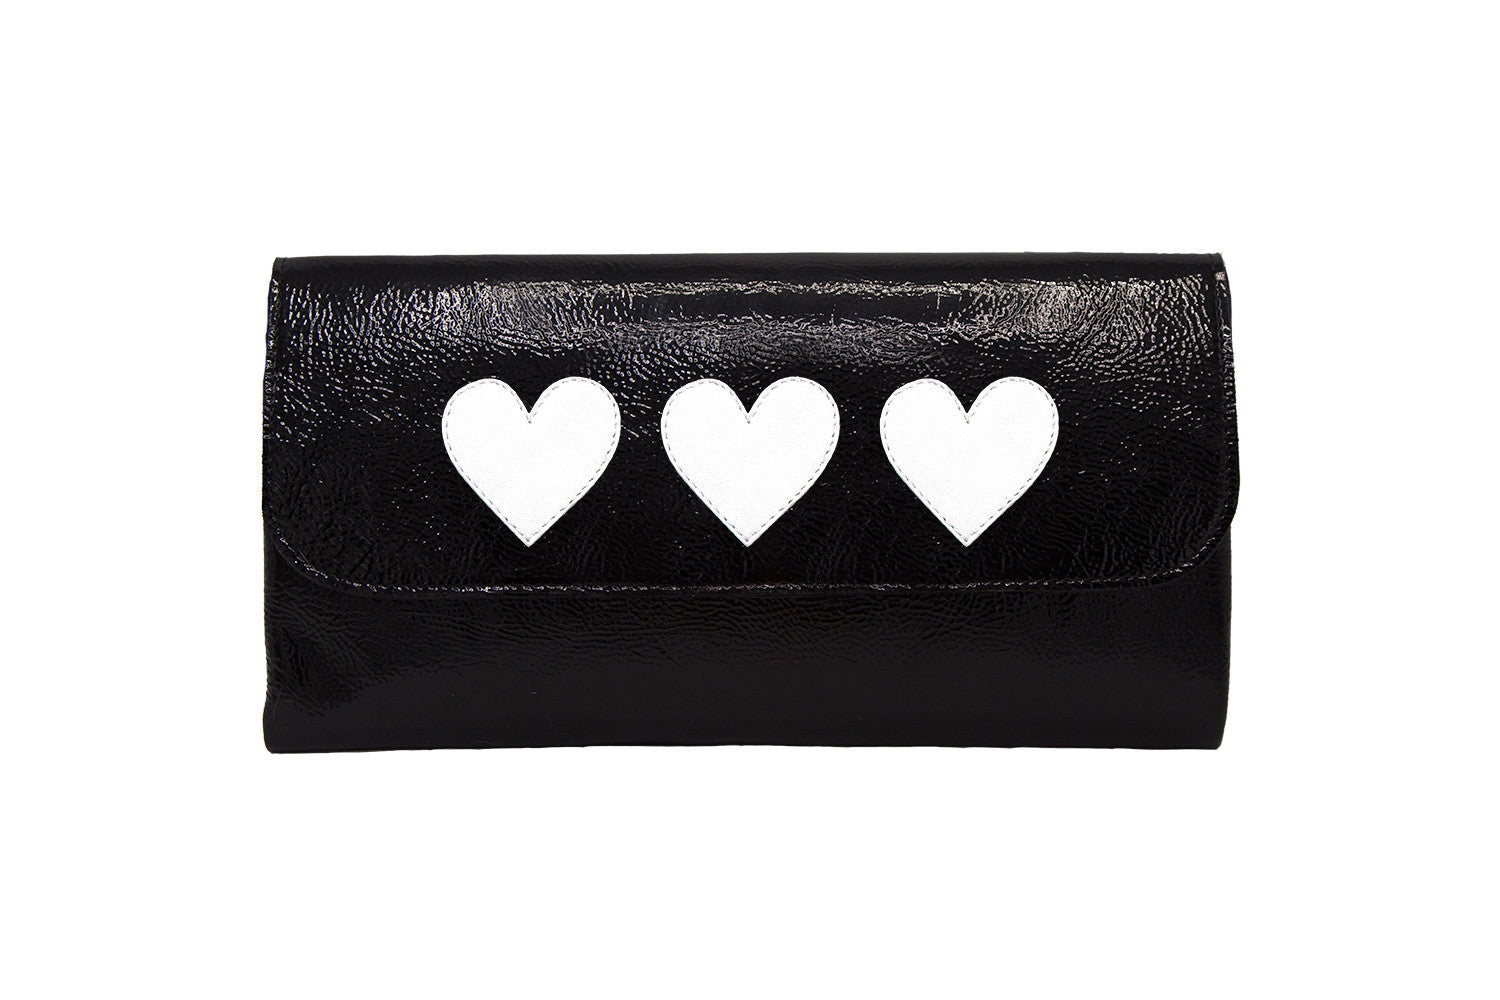 Elle Clutch Cracked Black Patent Leather w/ 3 White Heart